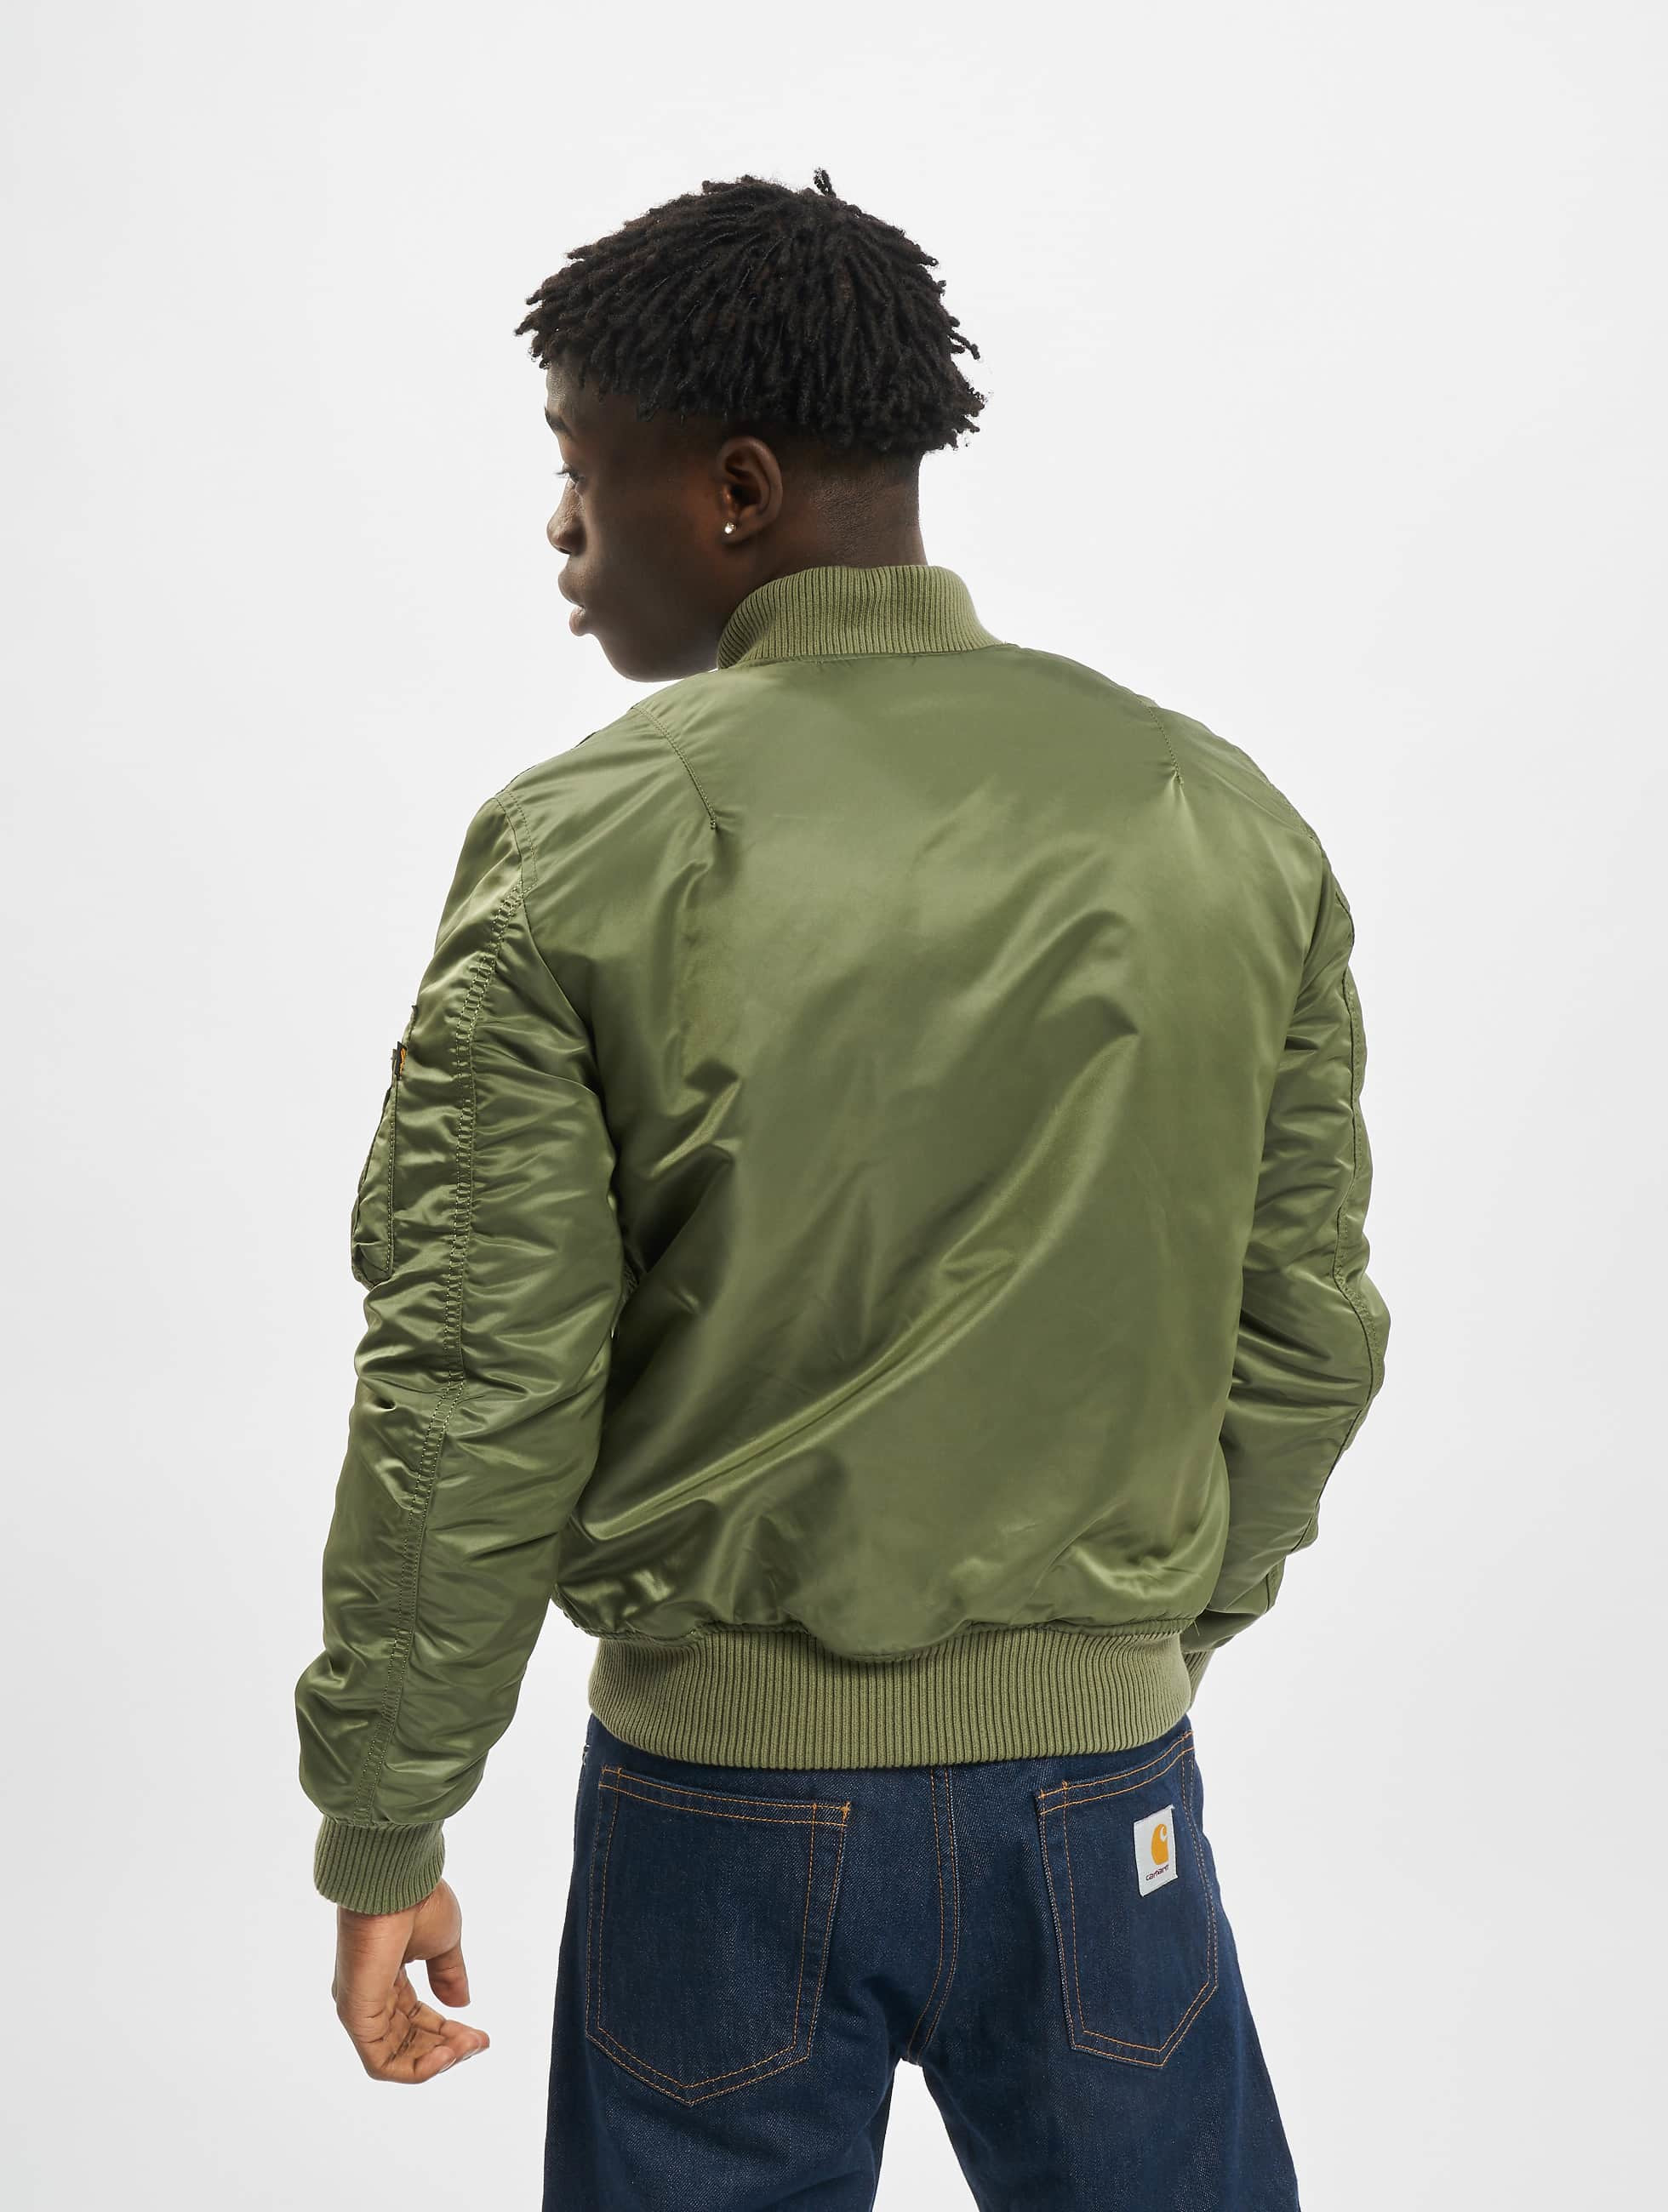 Alpha Industries Куртка-бомбардир Ma 1 Vf 59 оливковый